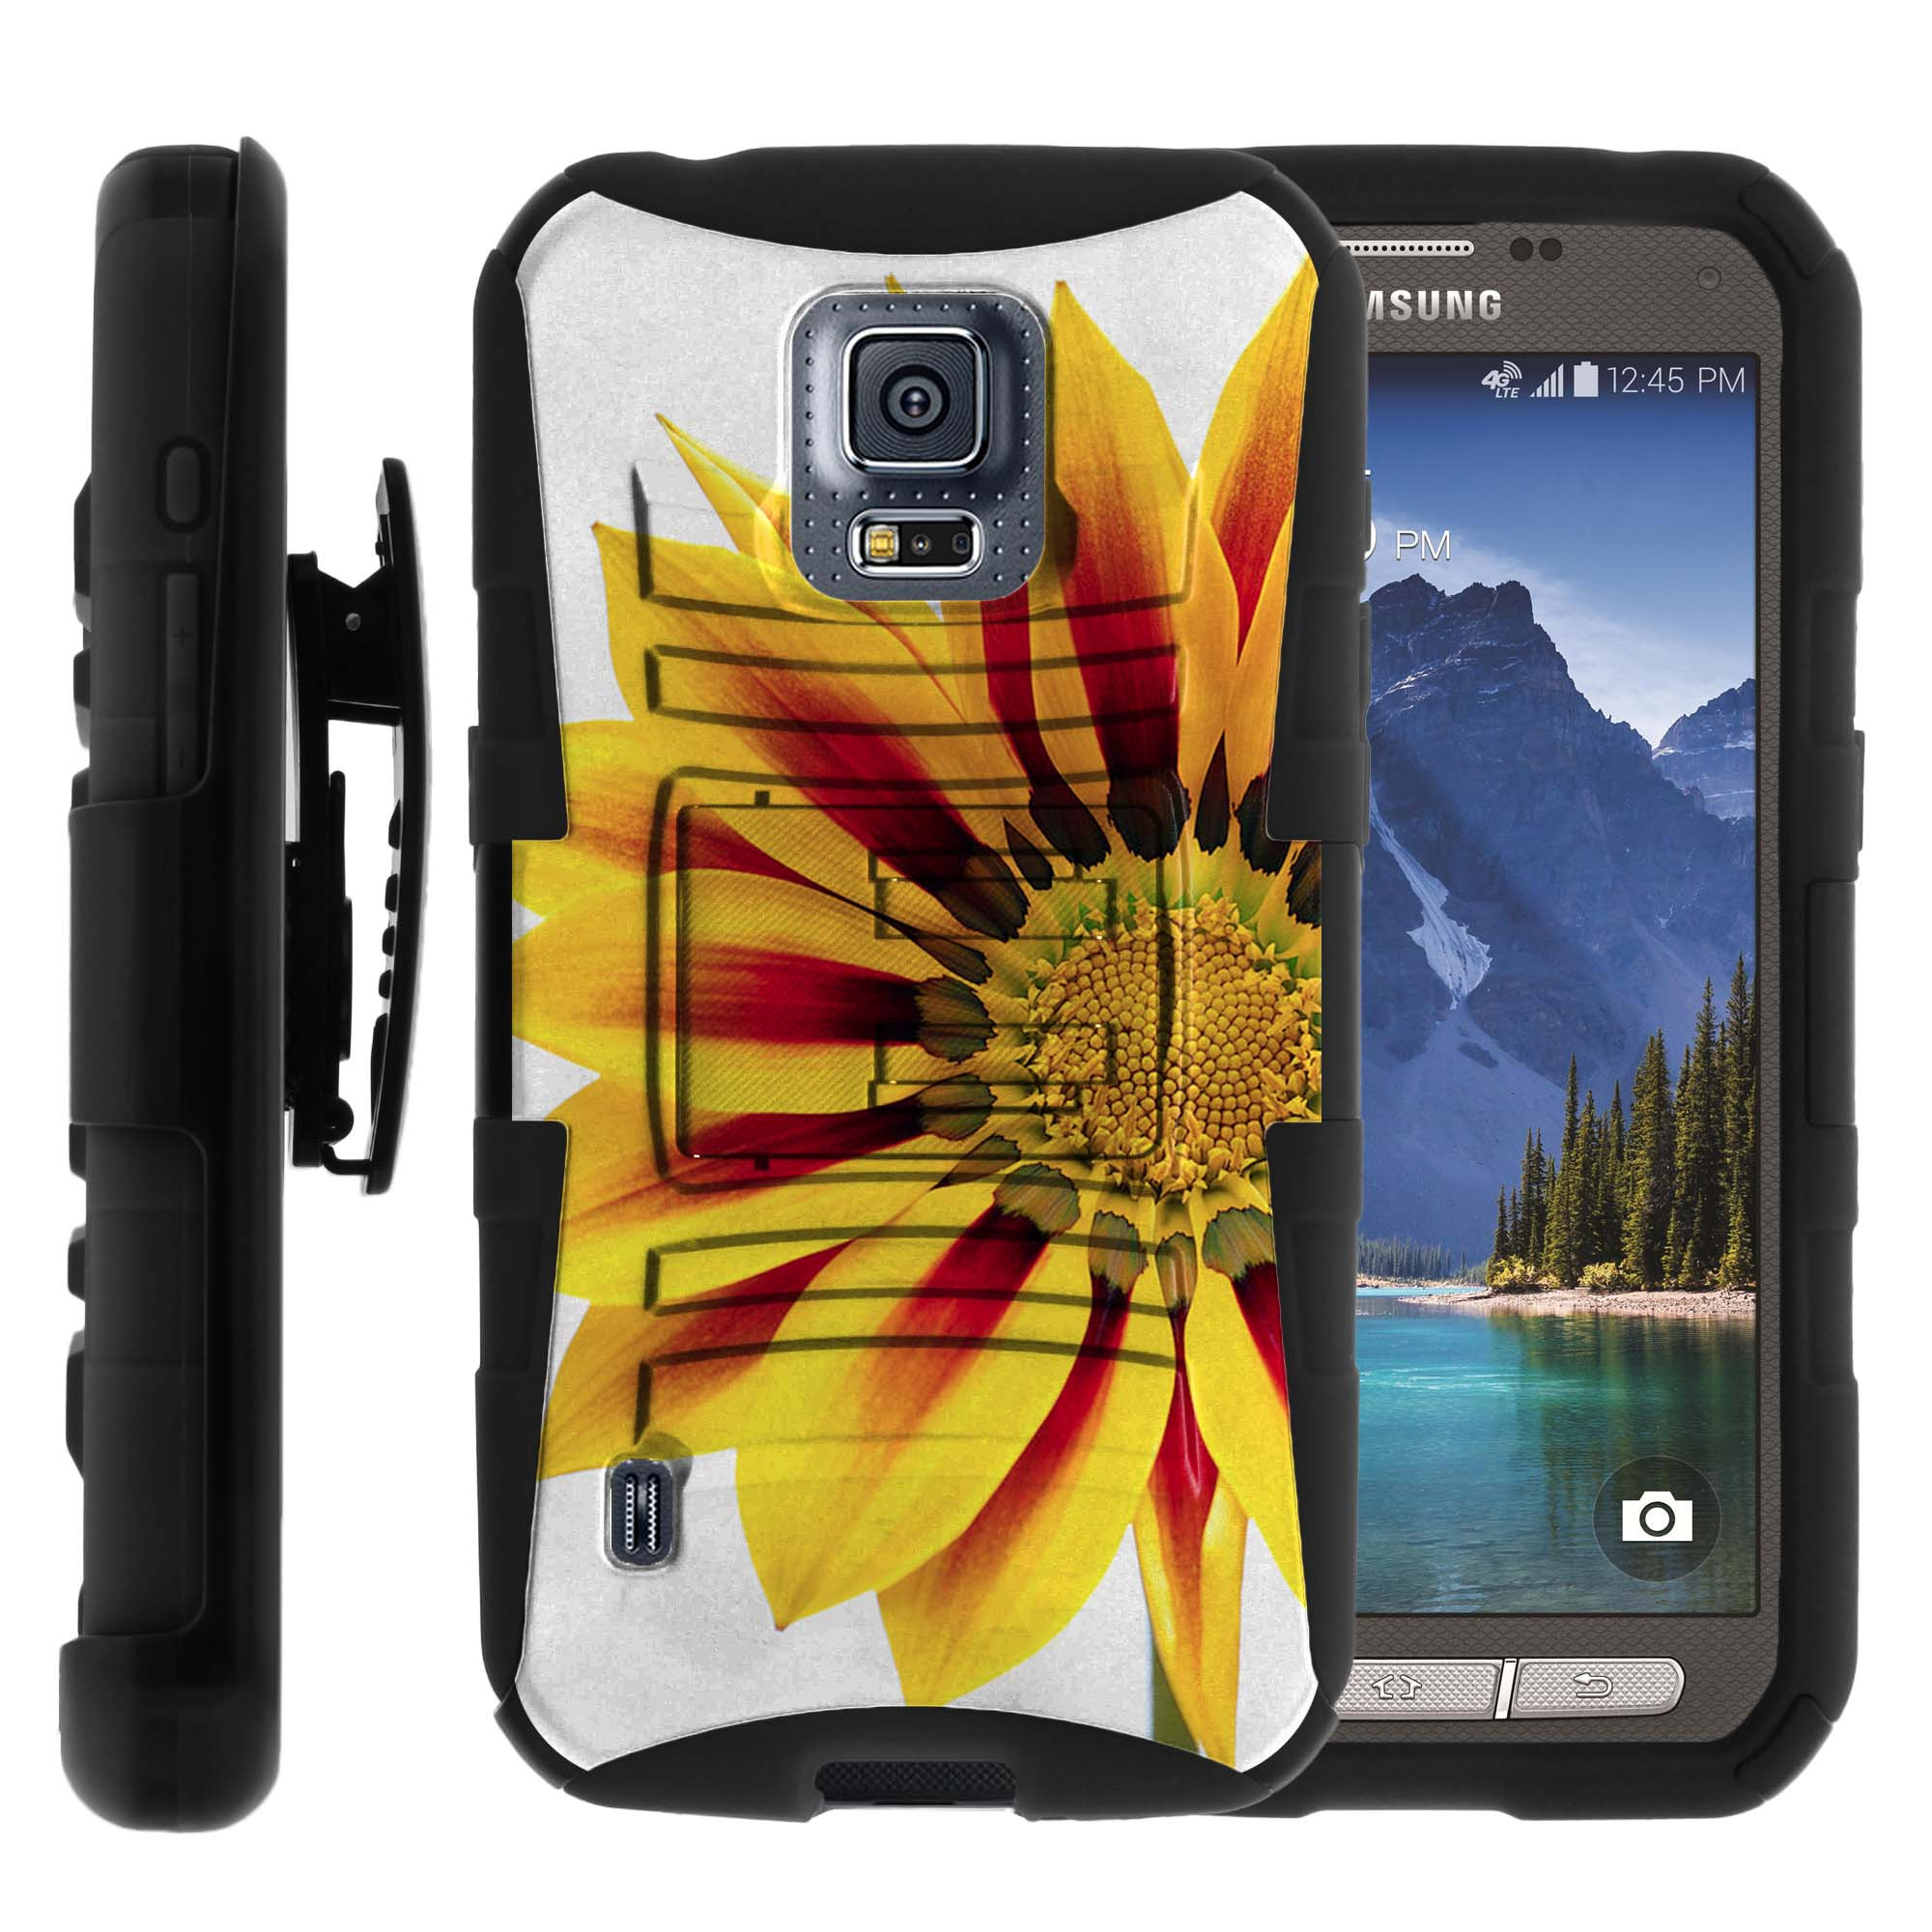 Case for Samsung Galaxy S5-ACTIVE SM-G870 [ Clip Armor Series ] Holster & Belt Clip Dual-layer Combo w/ Built-in Kickstand - Yellow Sunflower